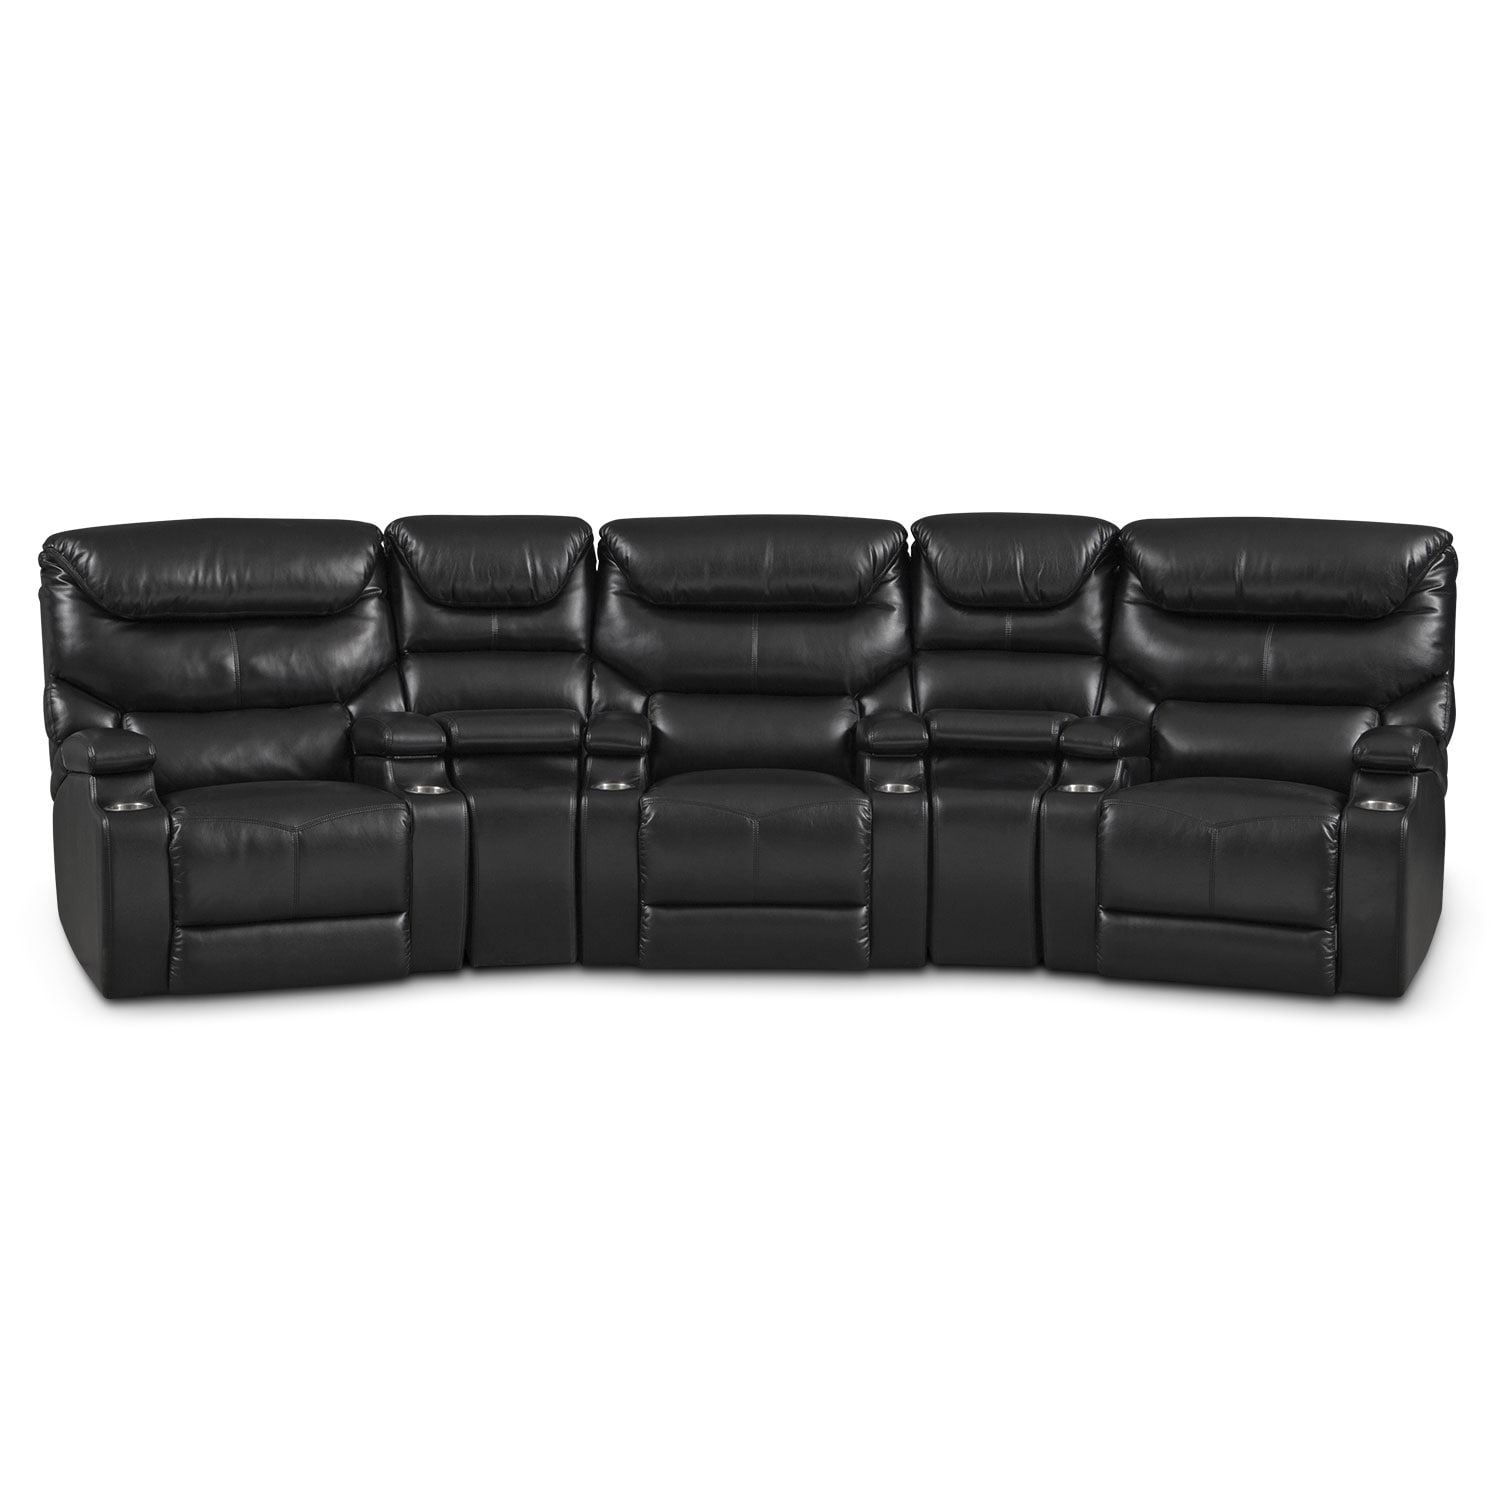 Living Room Furniture - Jupiter Black 5 Pc. Power Home Theater Sectional